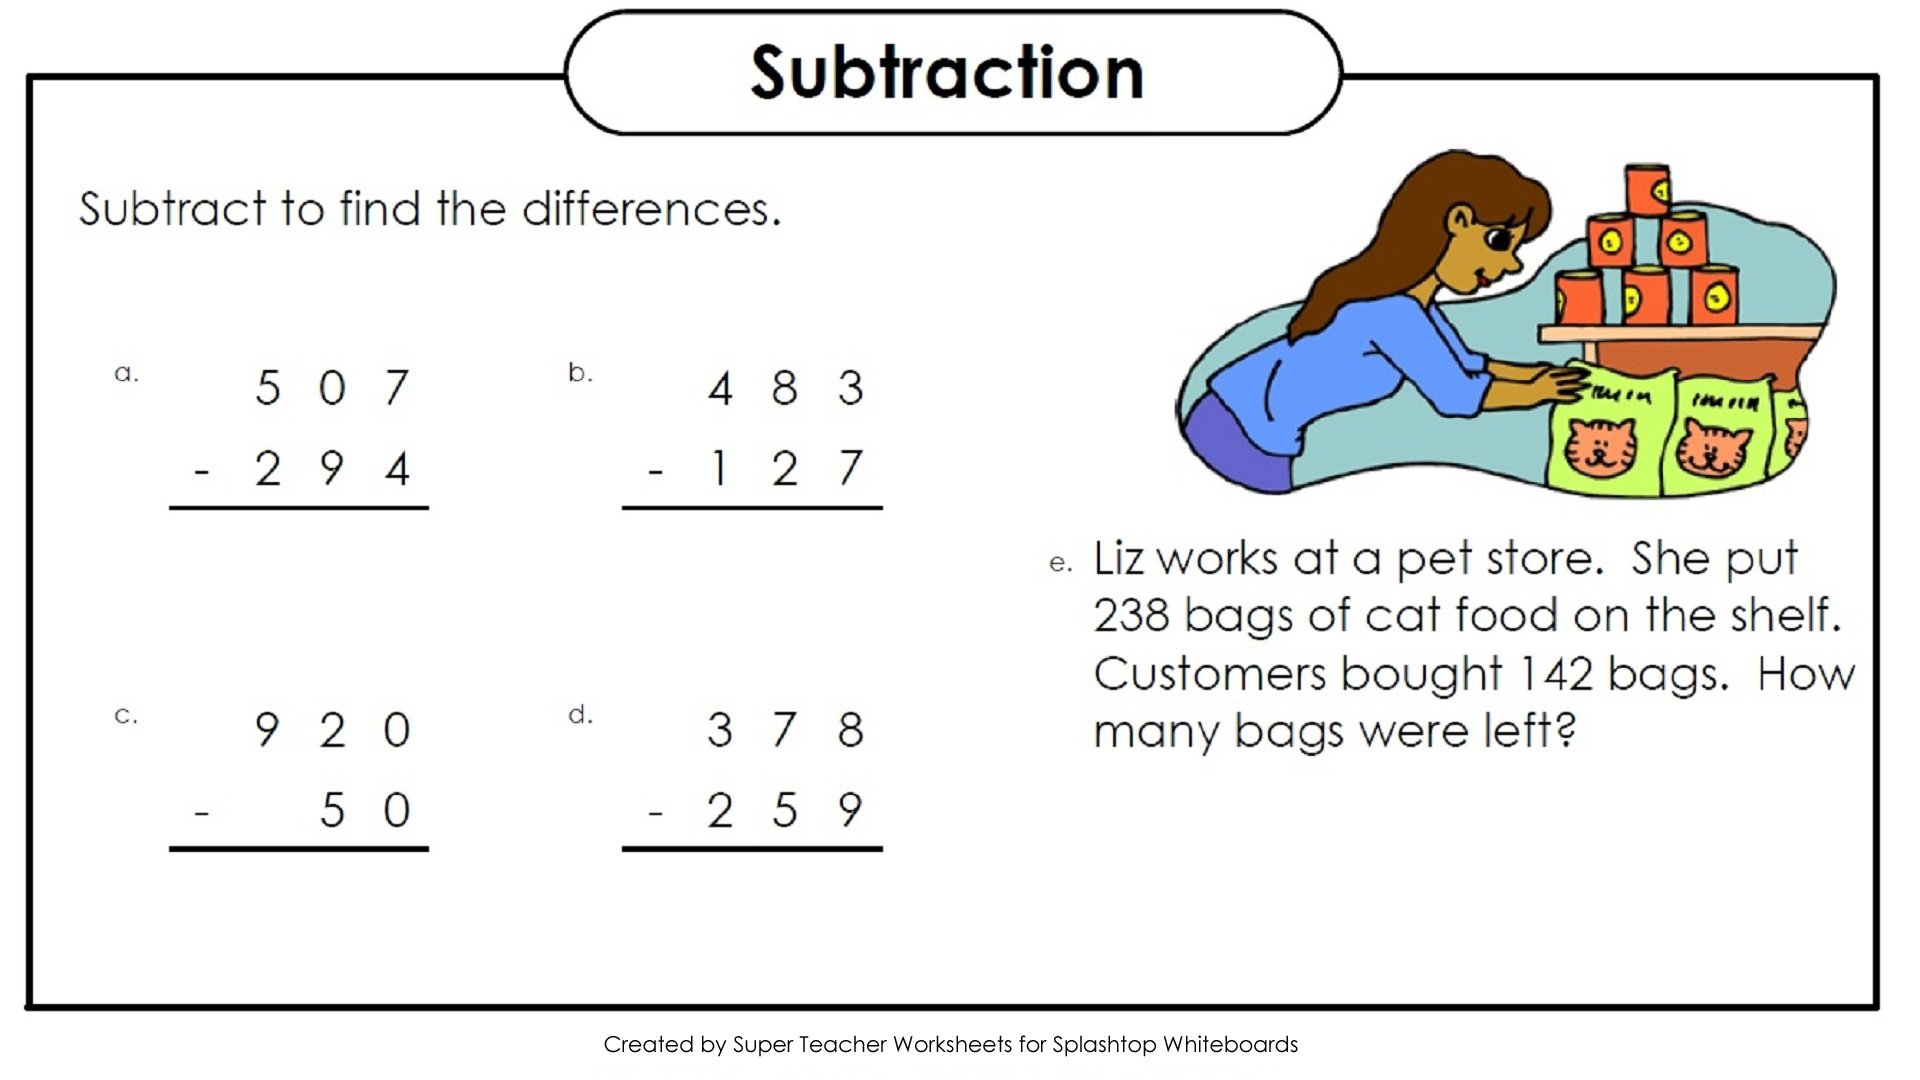 Subtracting Three Digit Numbers Scalien – Subtracting 3 Digit Numbers Worksheet